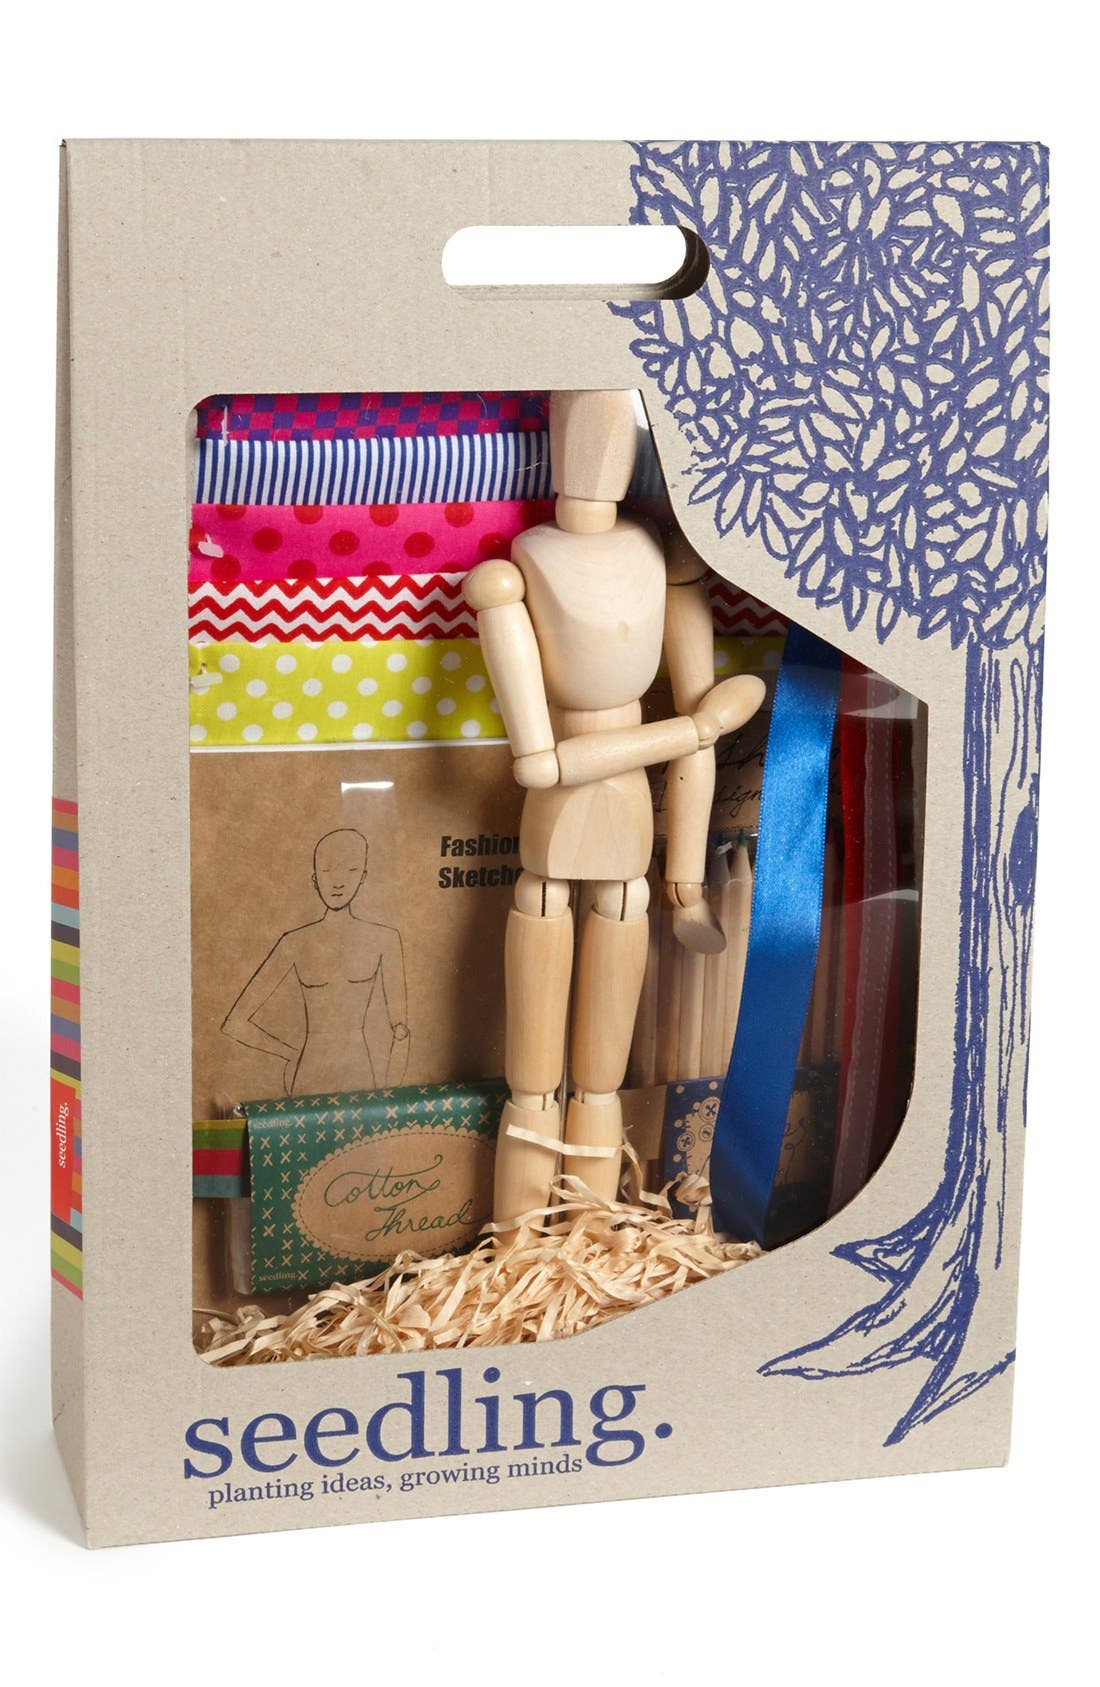 Alternate Image 1 Selected - Seedling 'Fashion Designer's Kit' Craft Kit